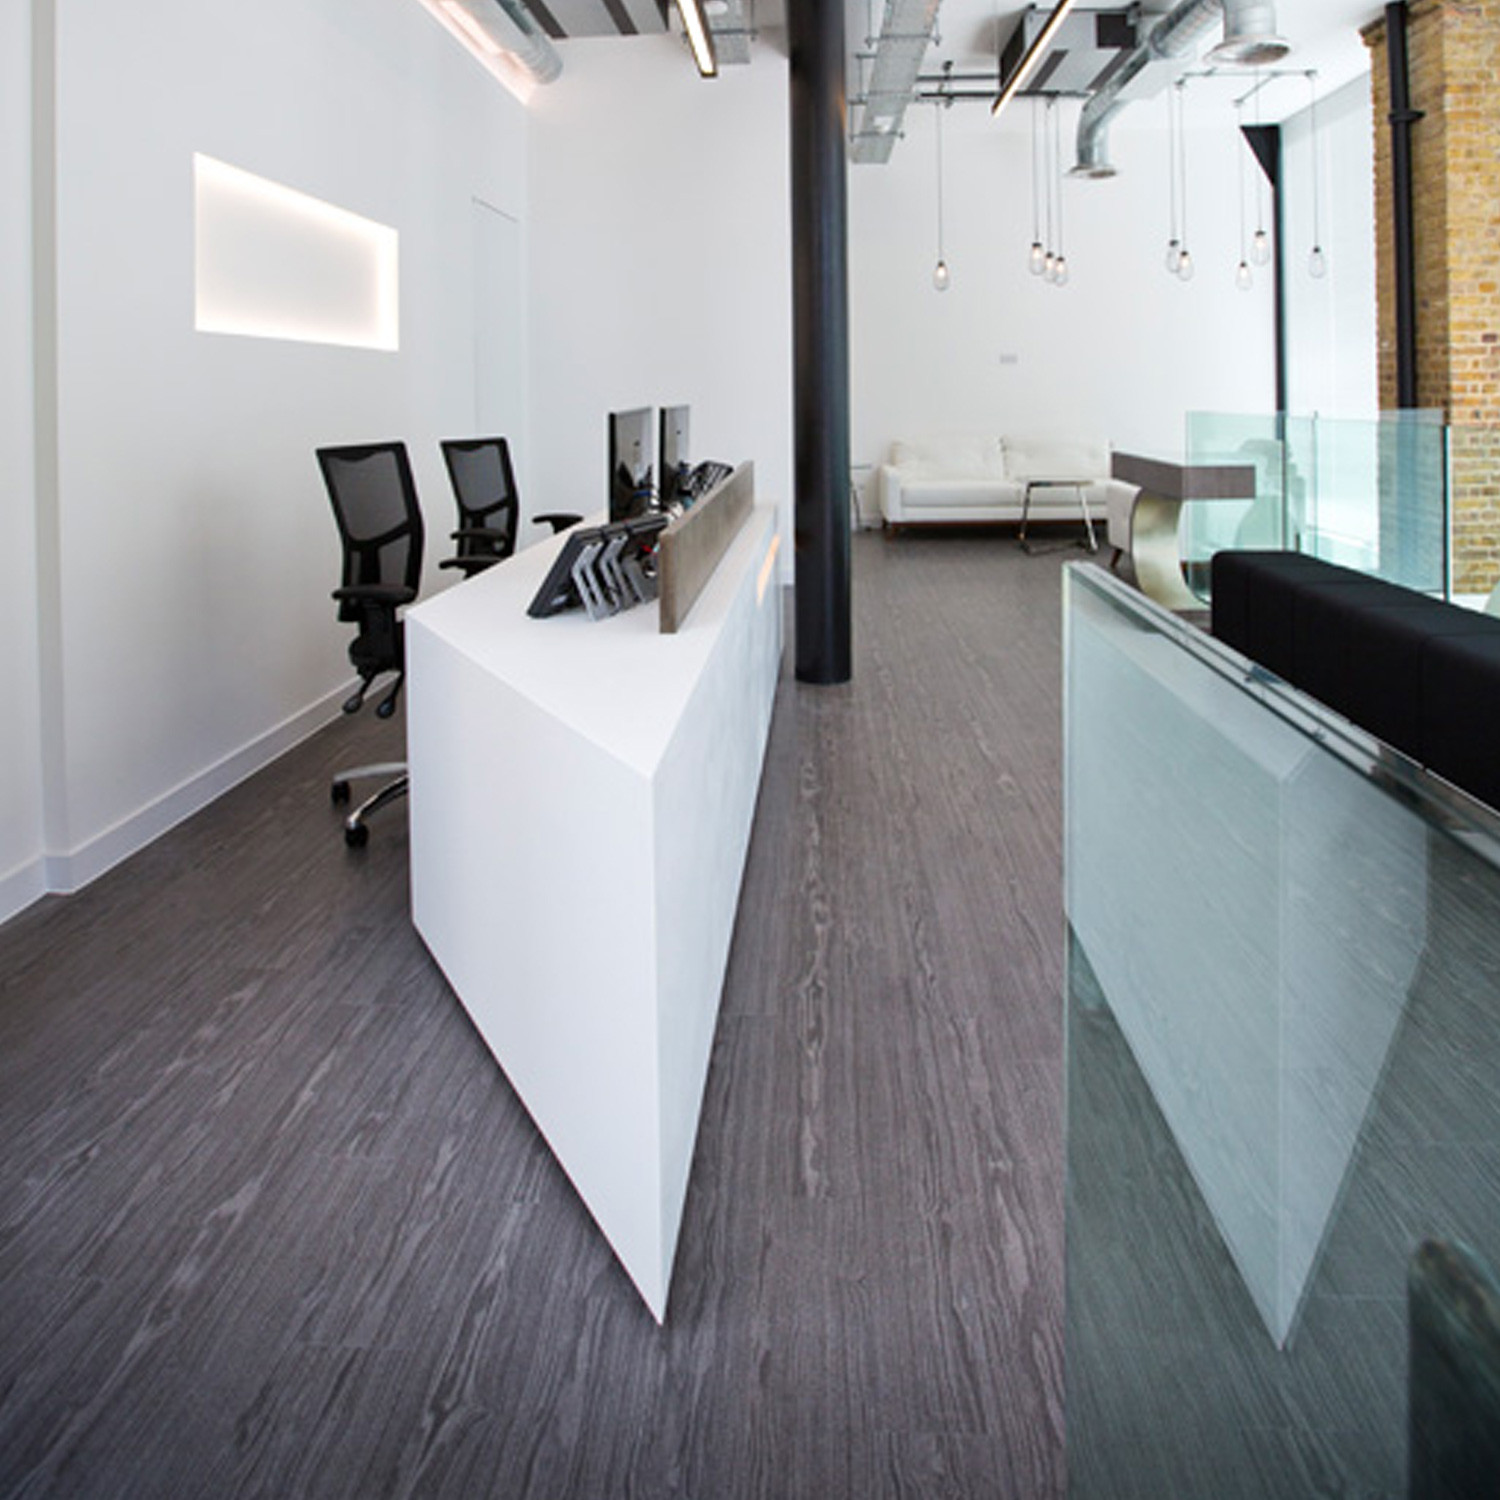 Thermoformed Corian Reception Desk